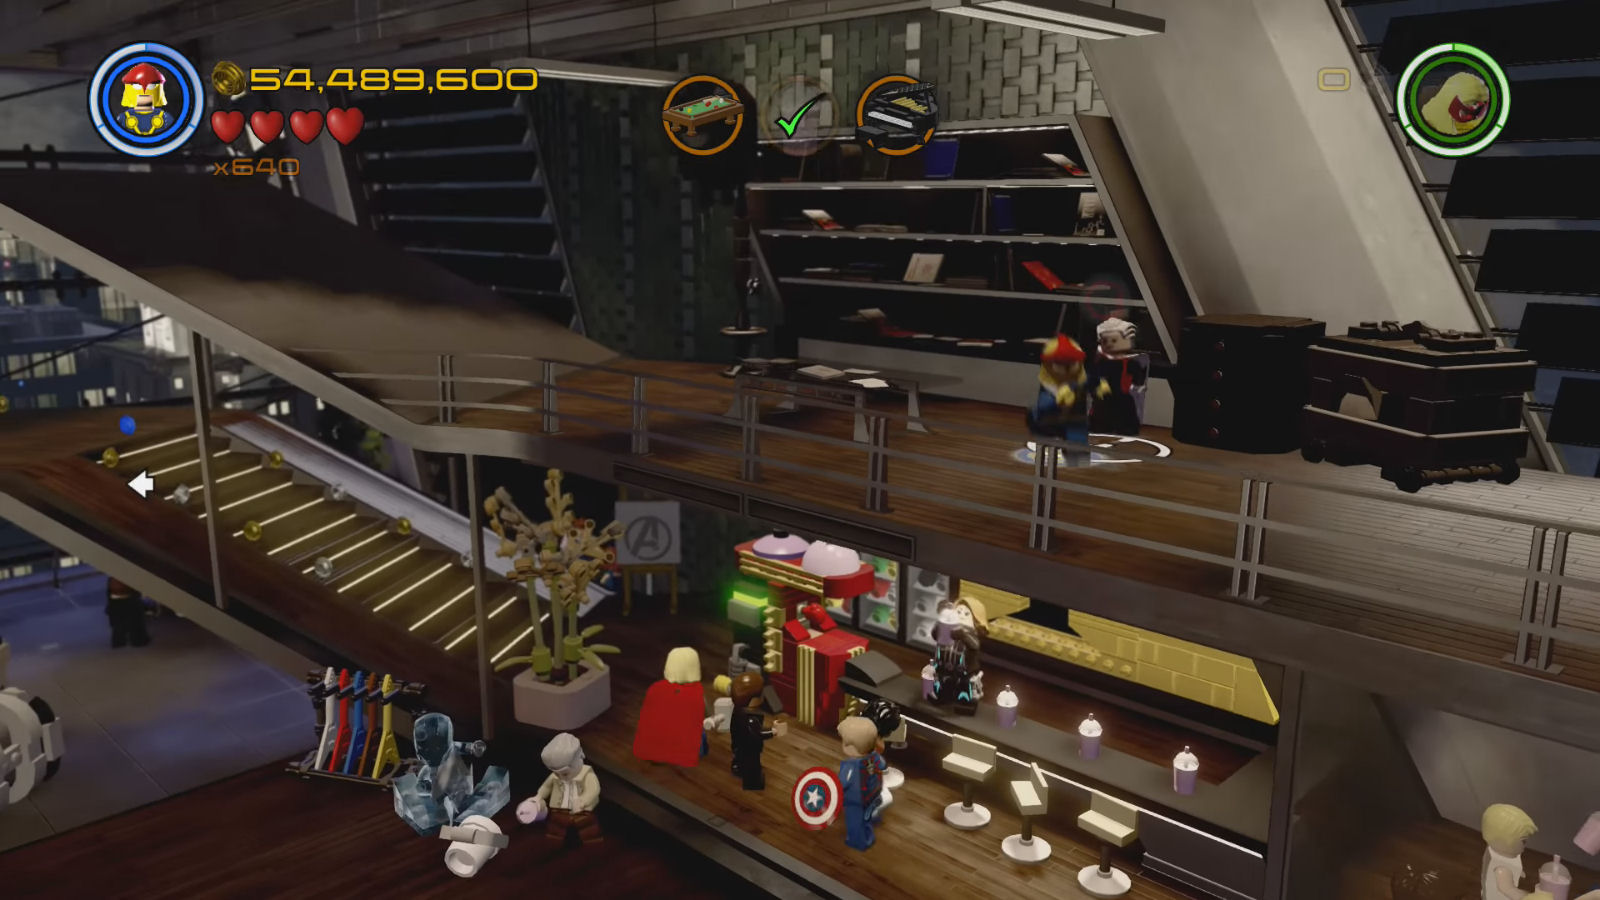 Lego Marvel's Avengers The Collector Vinyl Record Location